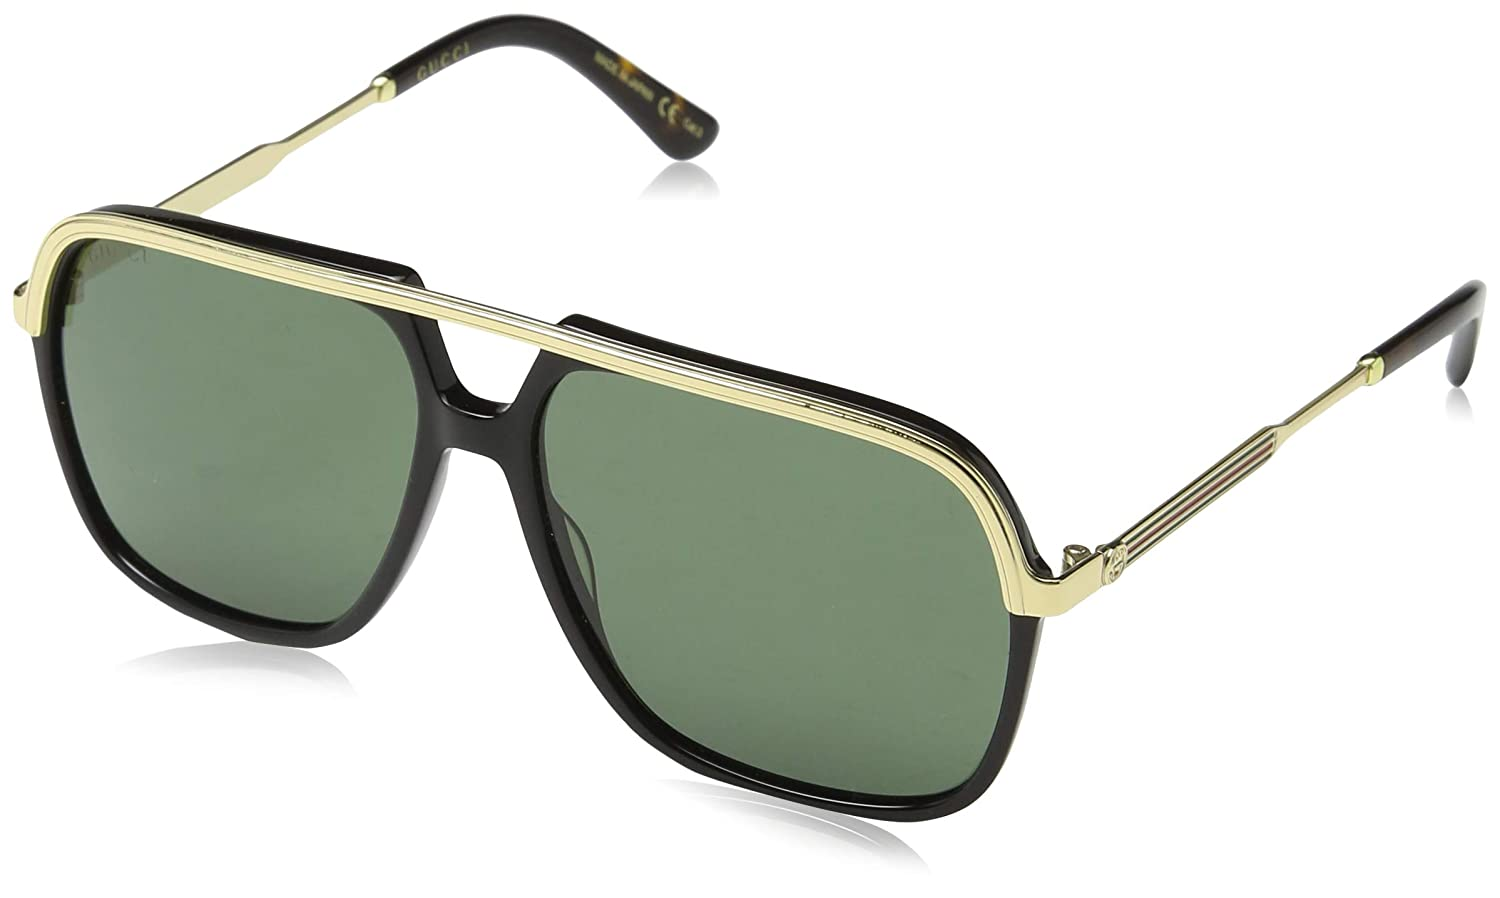 cc3f80ddfc1 Amazon.com  Gucci GG0200S 001 Black Gold GG0200S Square Pilot Sunglasses  Lens Category 3  Clothing